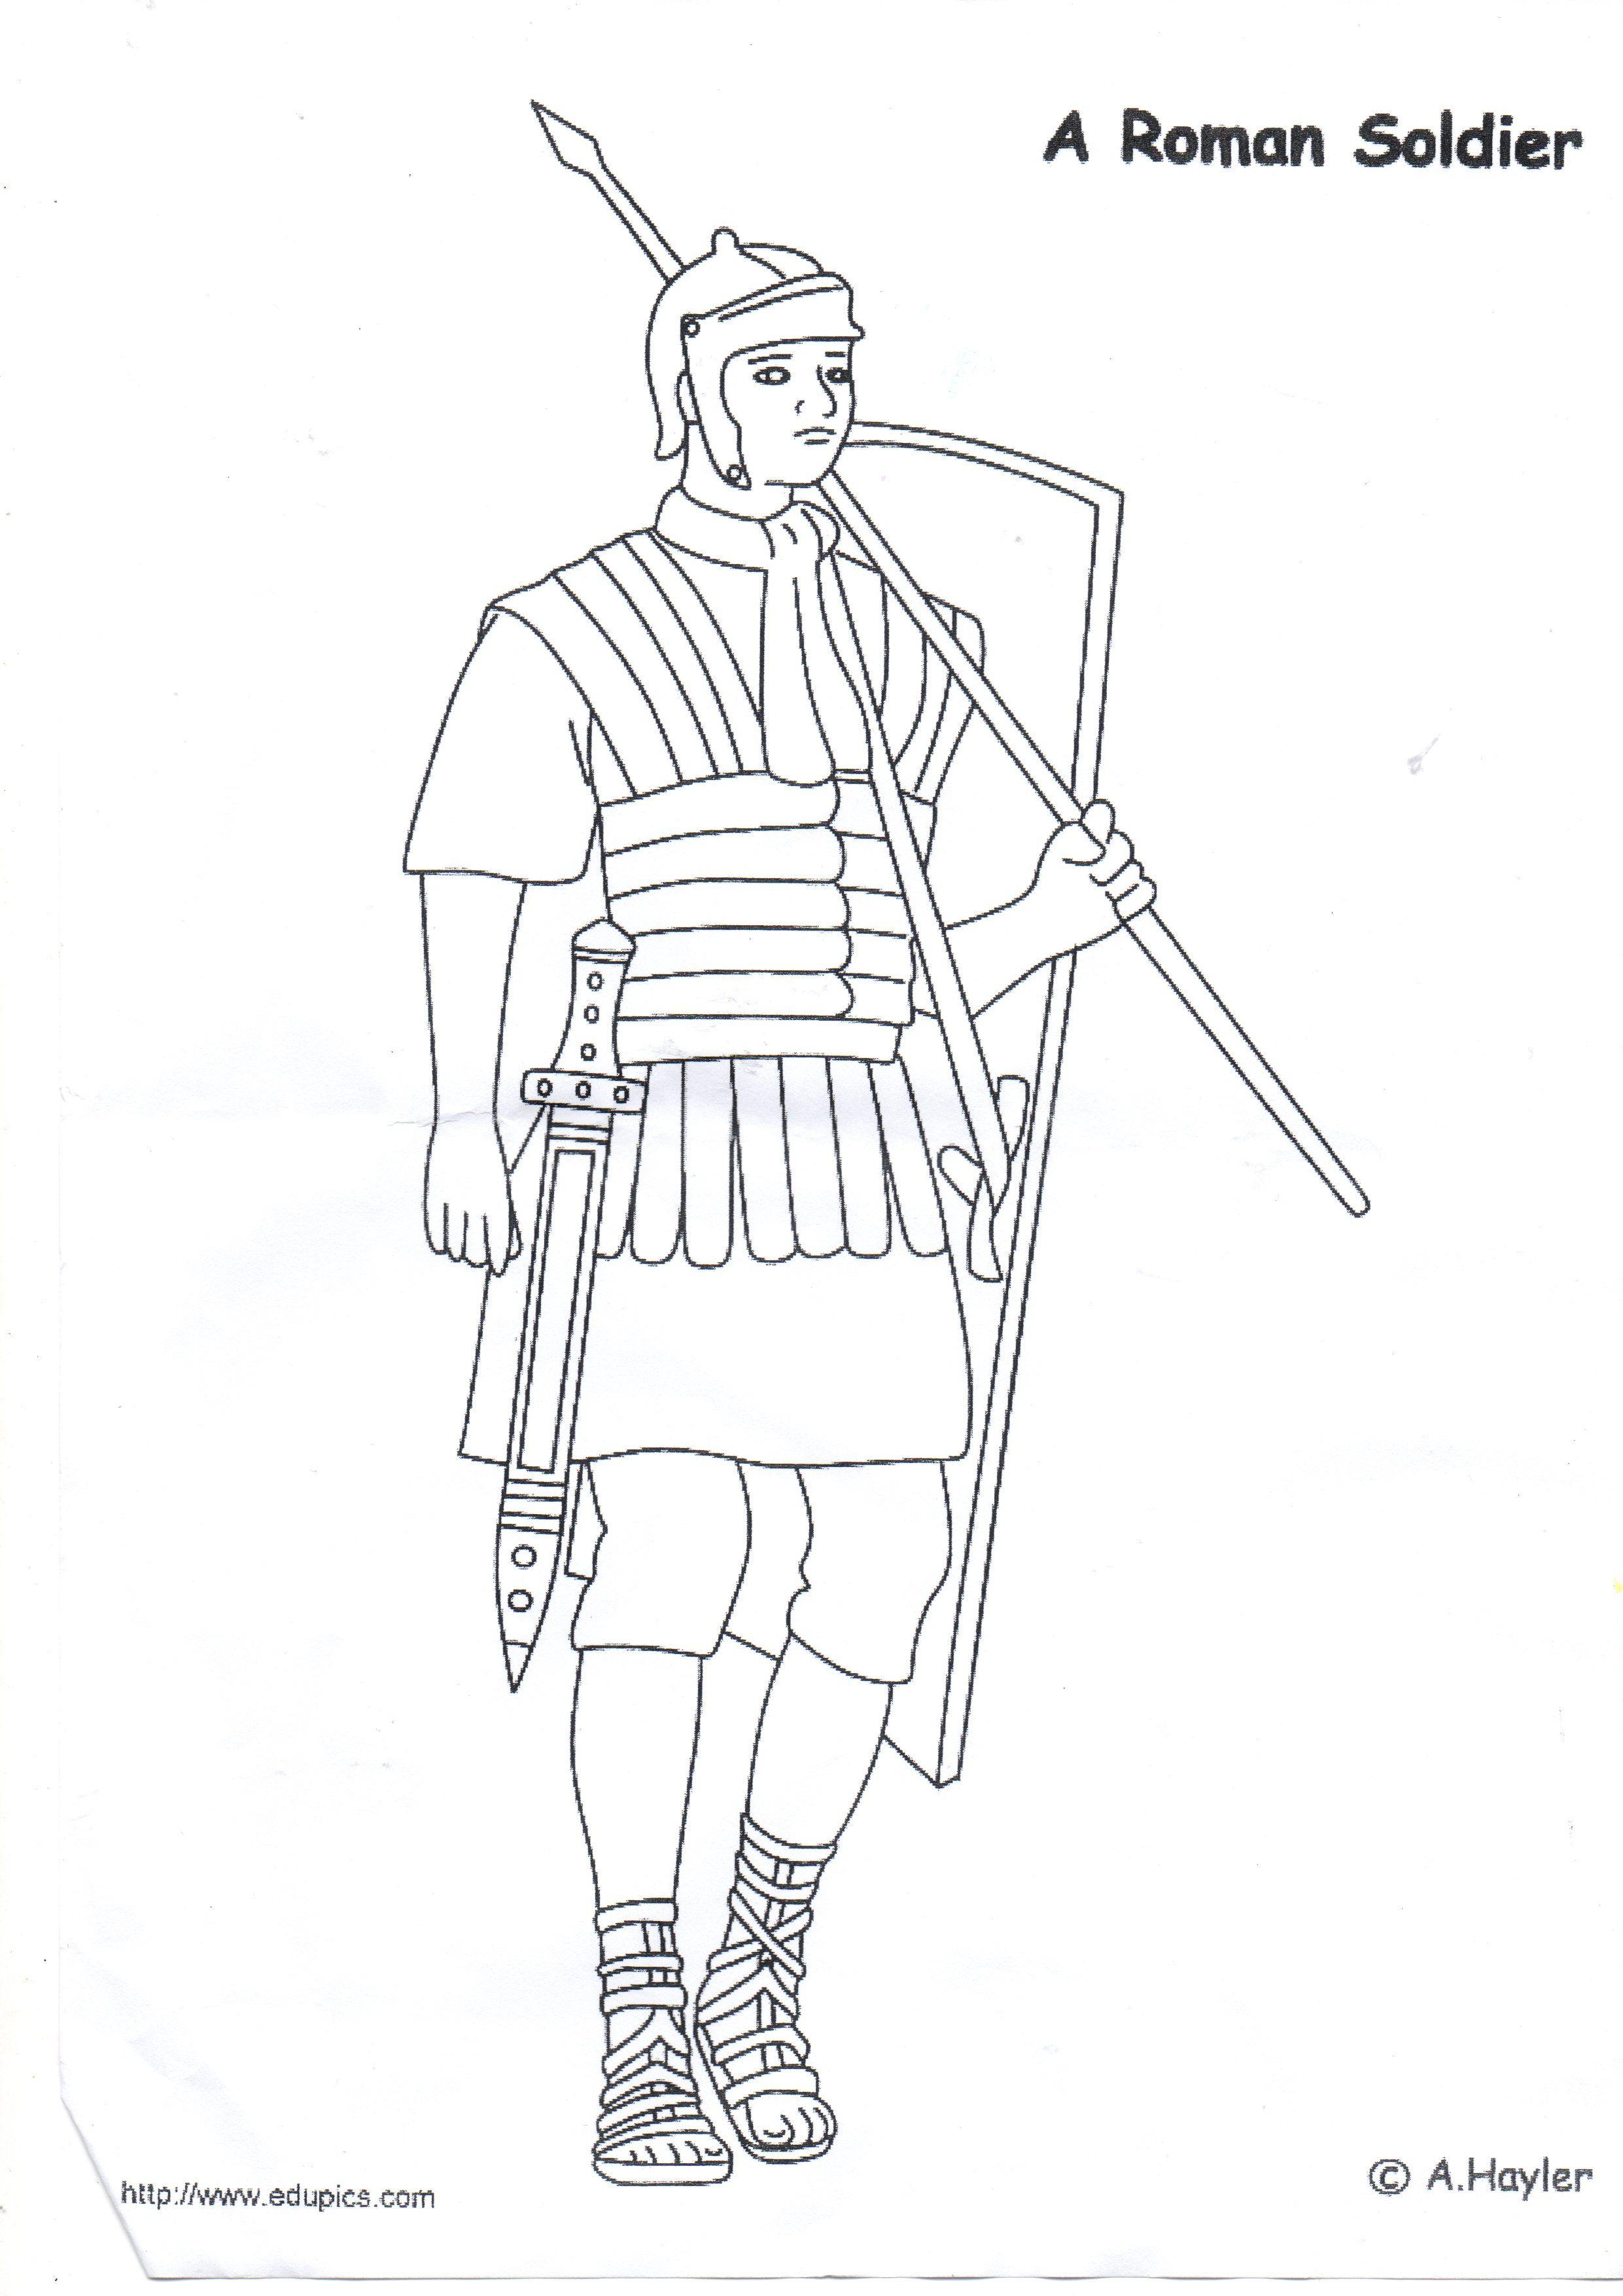 Roman Soldier Line Drawing To Colour In Roman Soldiers Coloring Pages Ancient Rome Kids